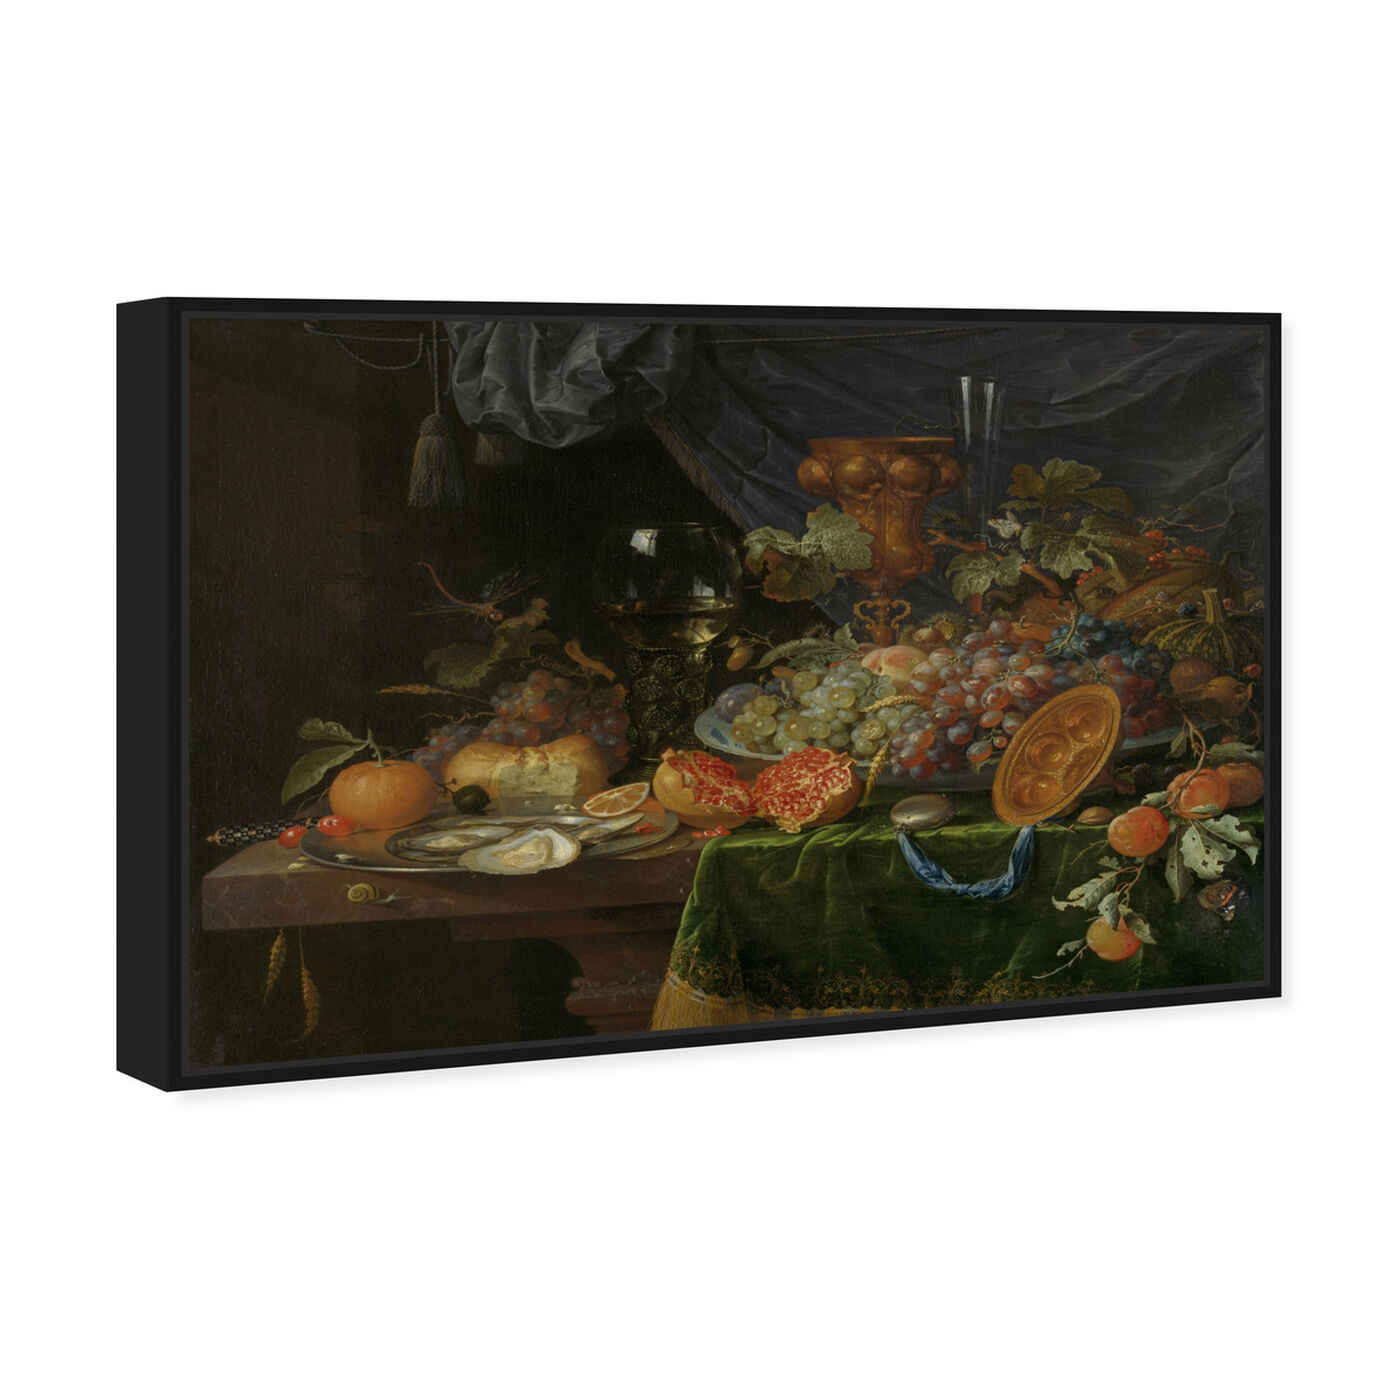 Angled view of Fruit Arrangement - The Art Cabinet featuring classic and figurative and realism art.